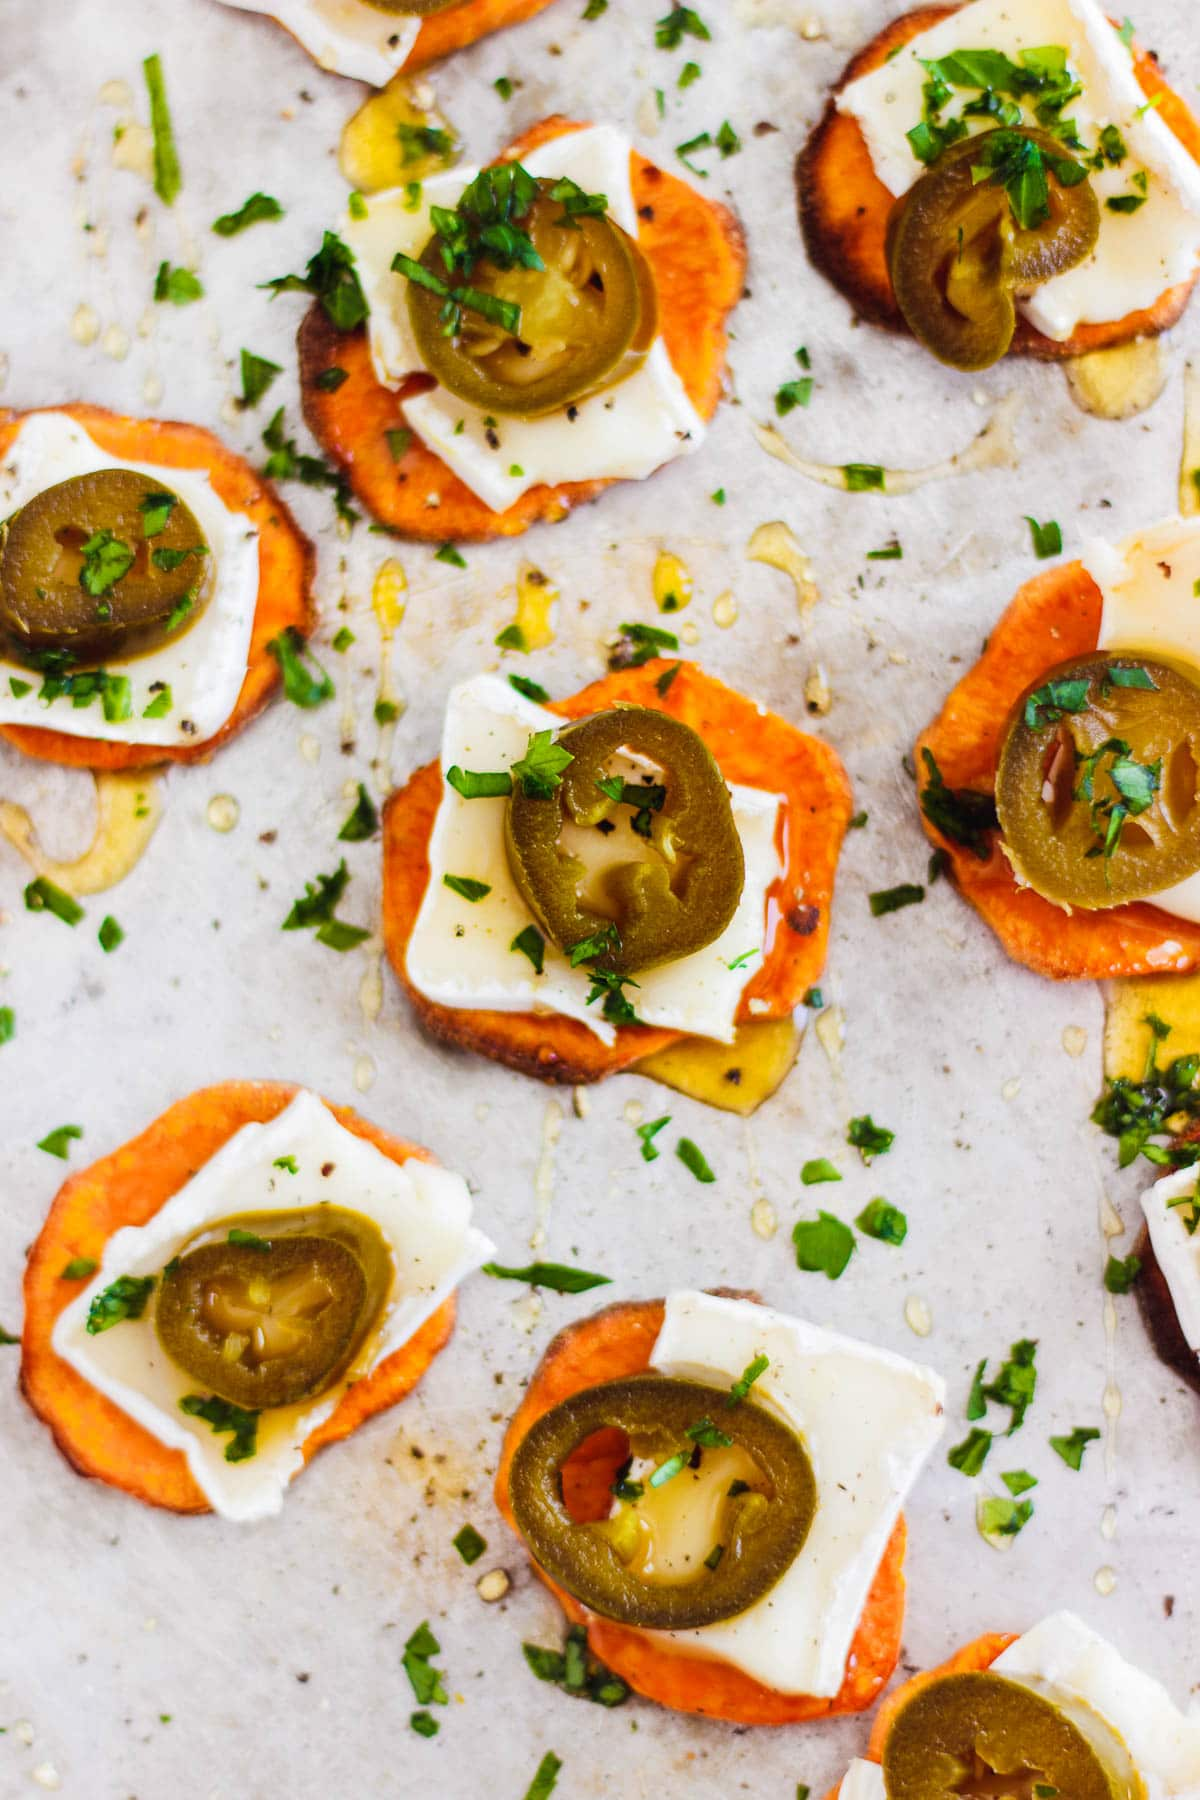 These sweet potato crostini with brie, honey and jalapenos make a wonderful fall or holiday appetizer. A naturally gluten-free, and vegetarian bite. #sweetpotatocrostini #holidayappetizer #briecrostini